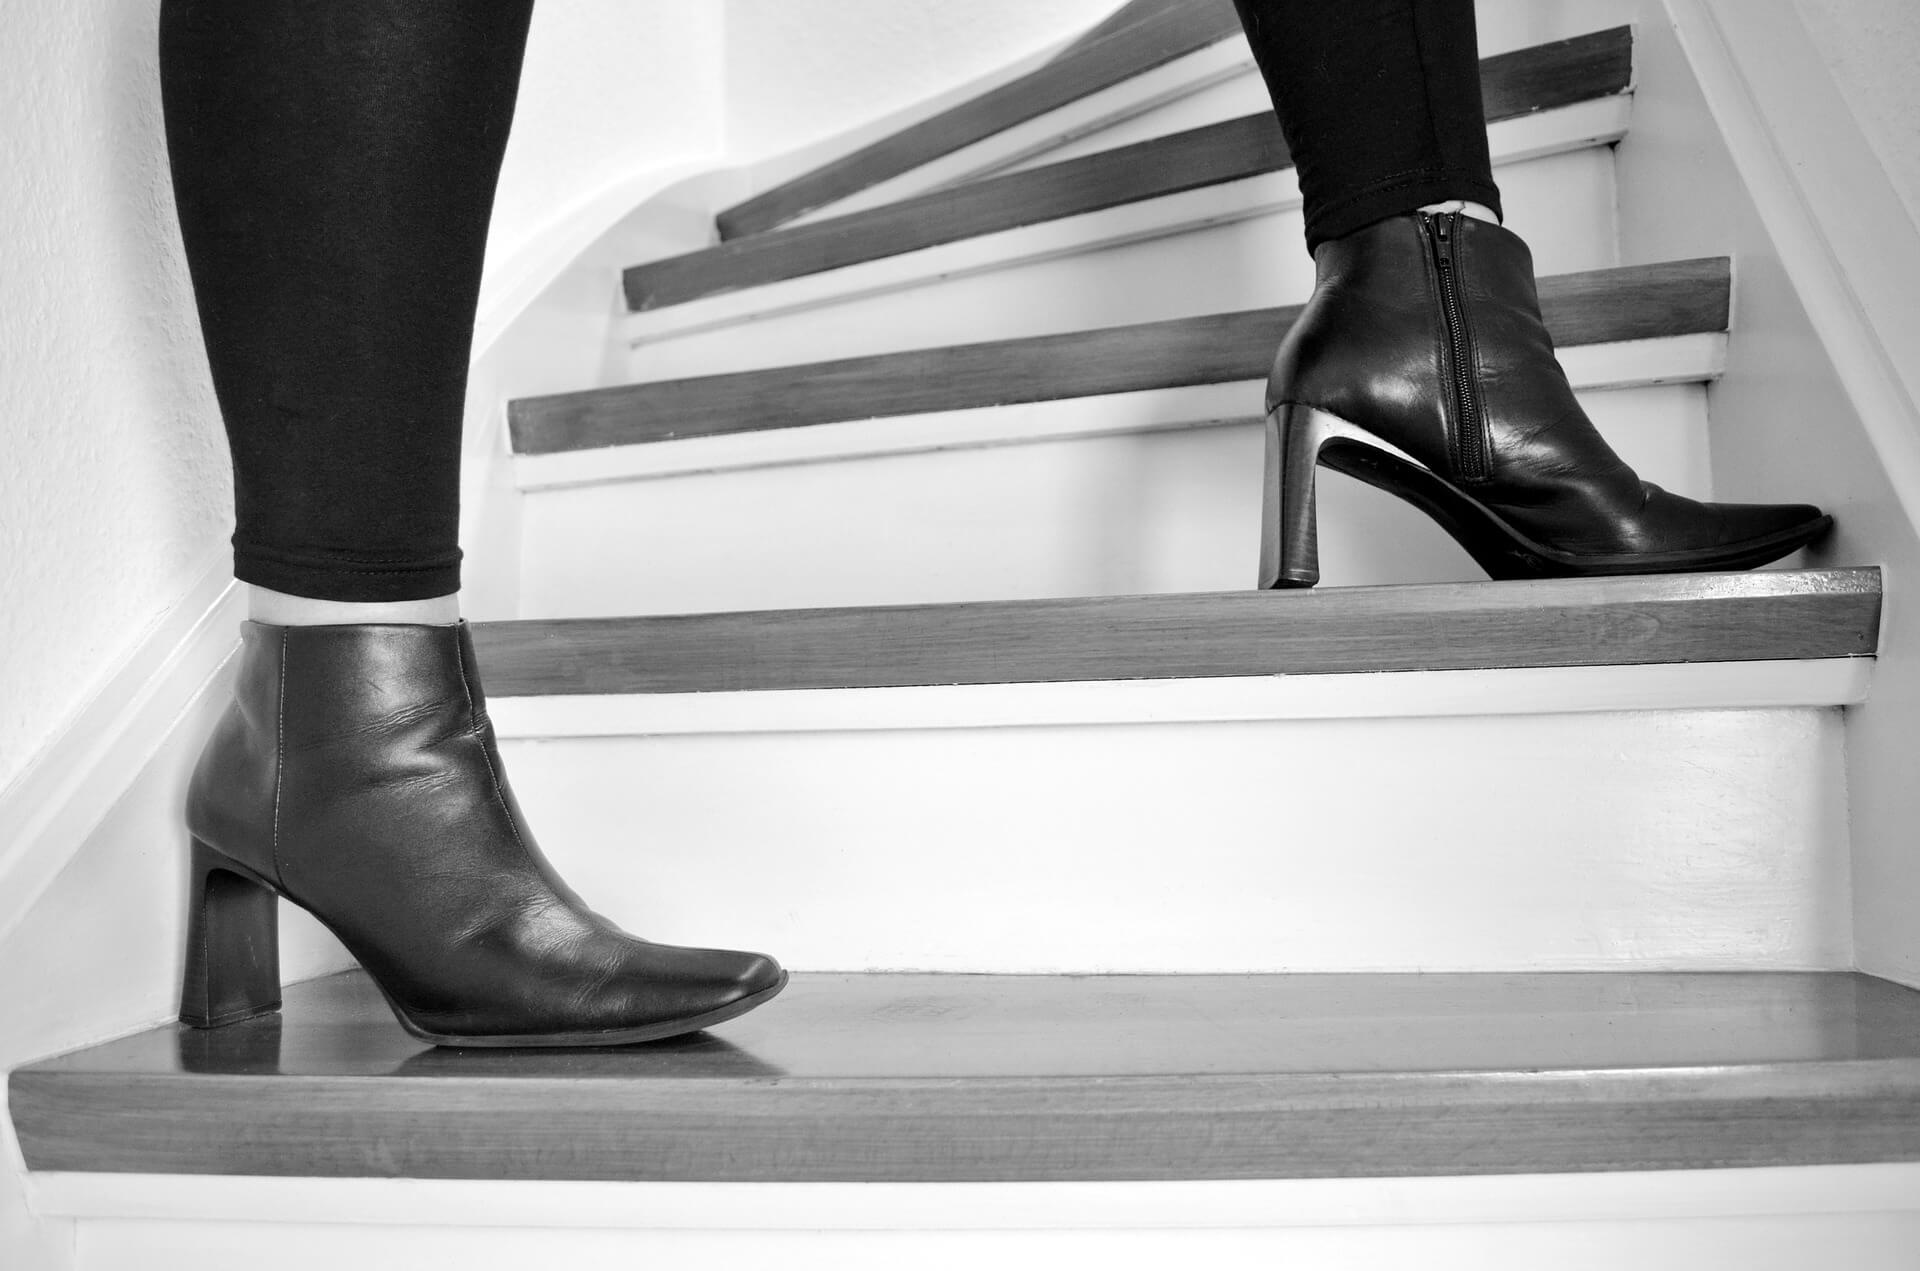 stairs-921252_1920